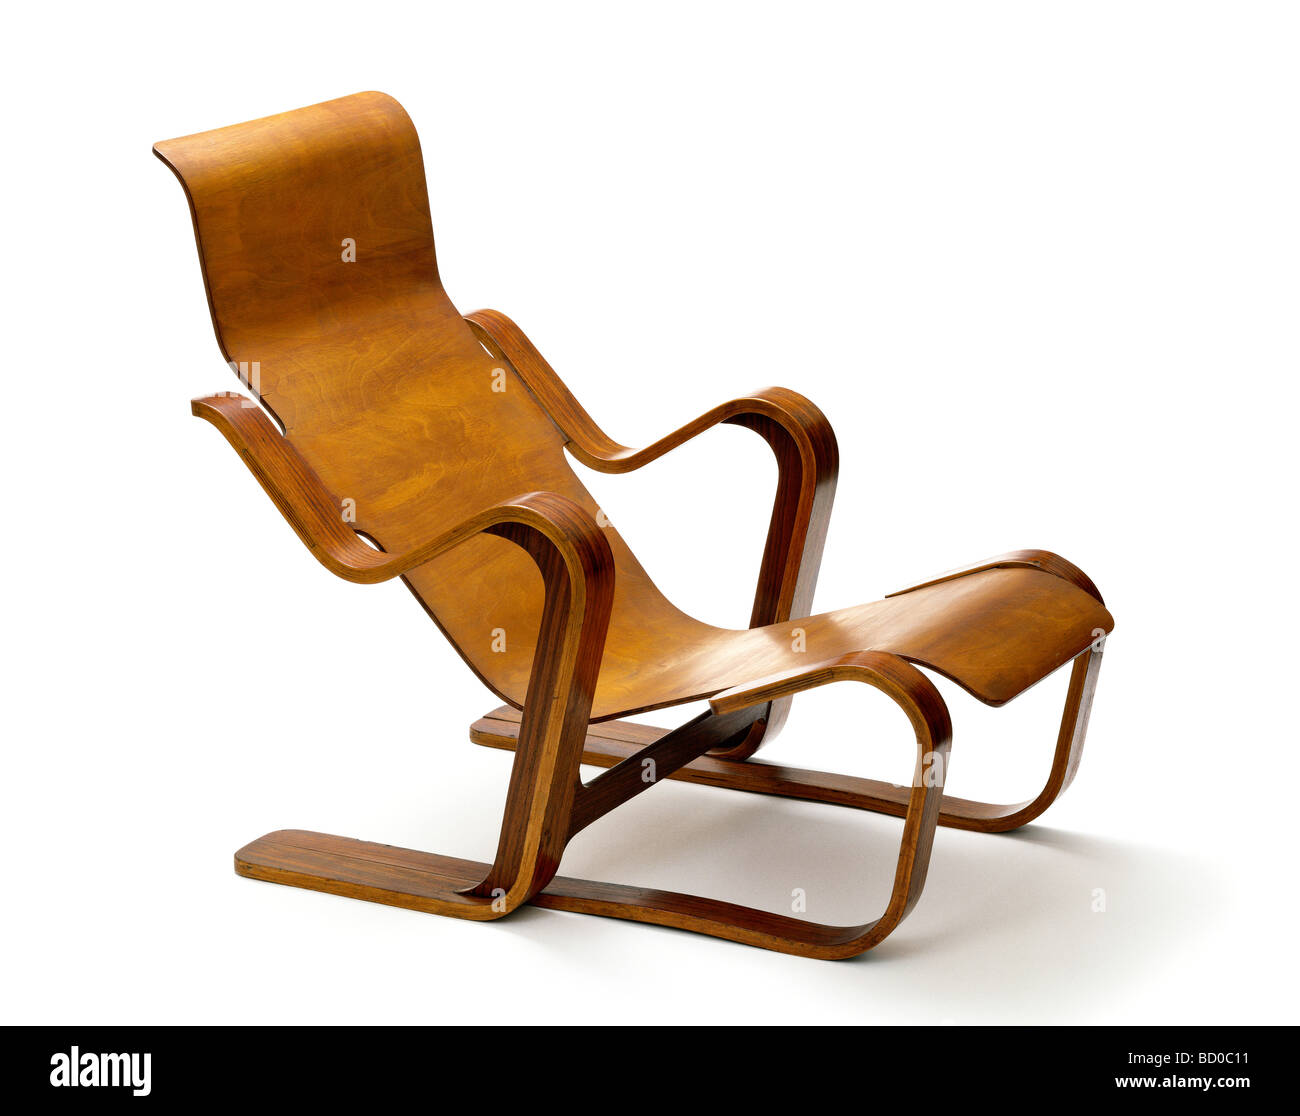 Chair By Marcel Breuer. London, Britain, 1936   Stock Image